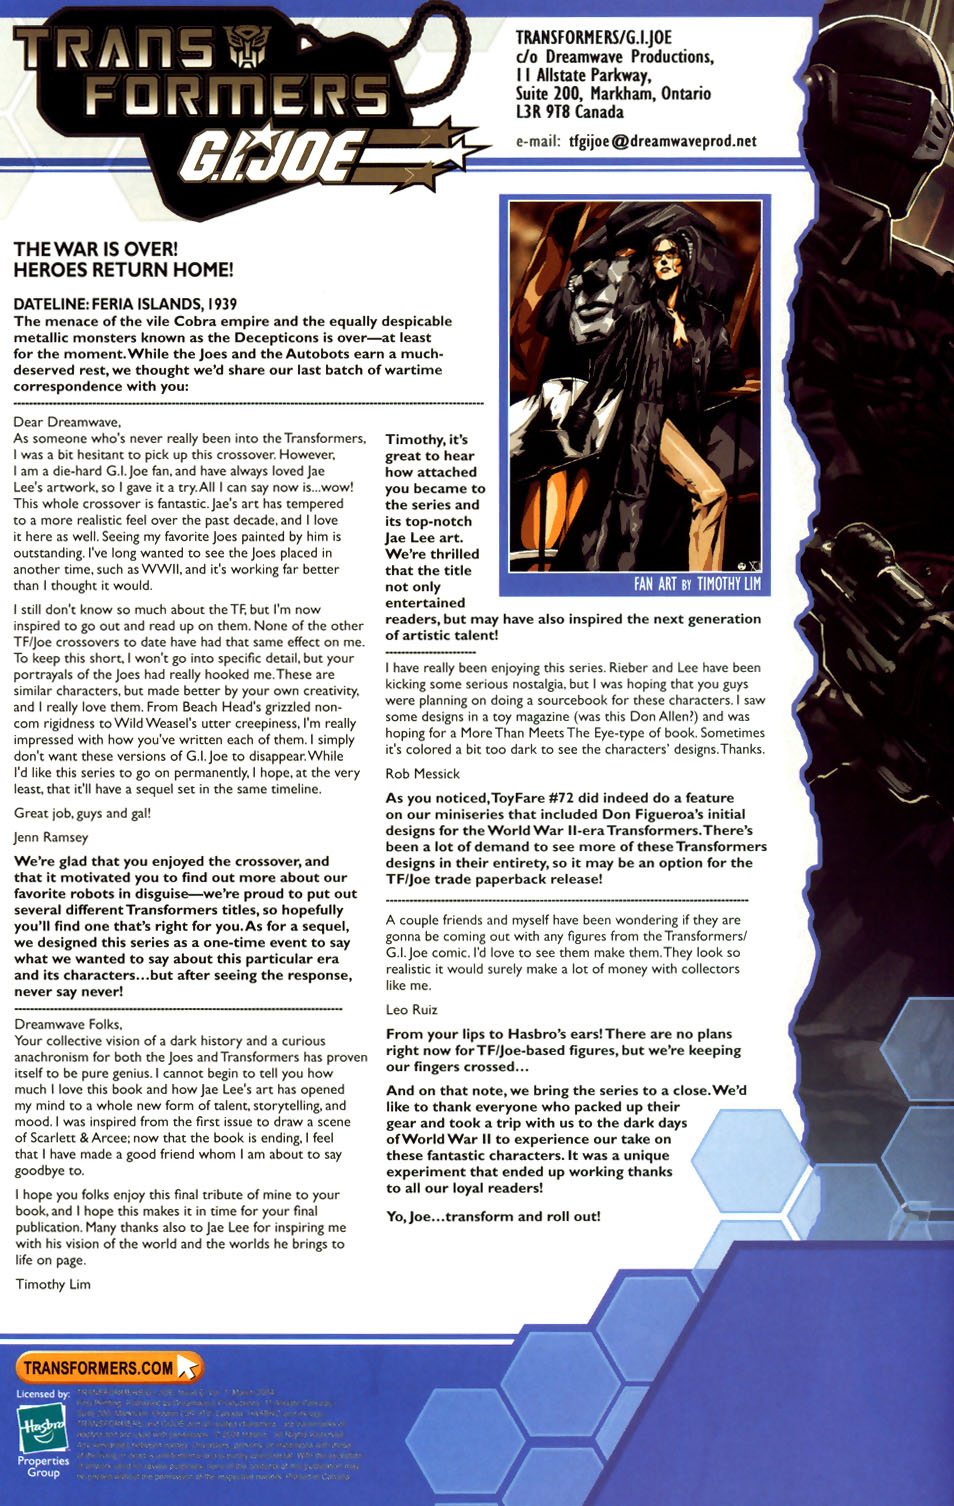 Read online Transformers/G.I. Joe comic -  Issue #6 - 24